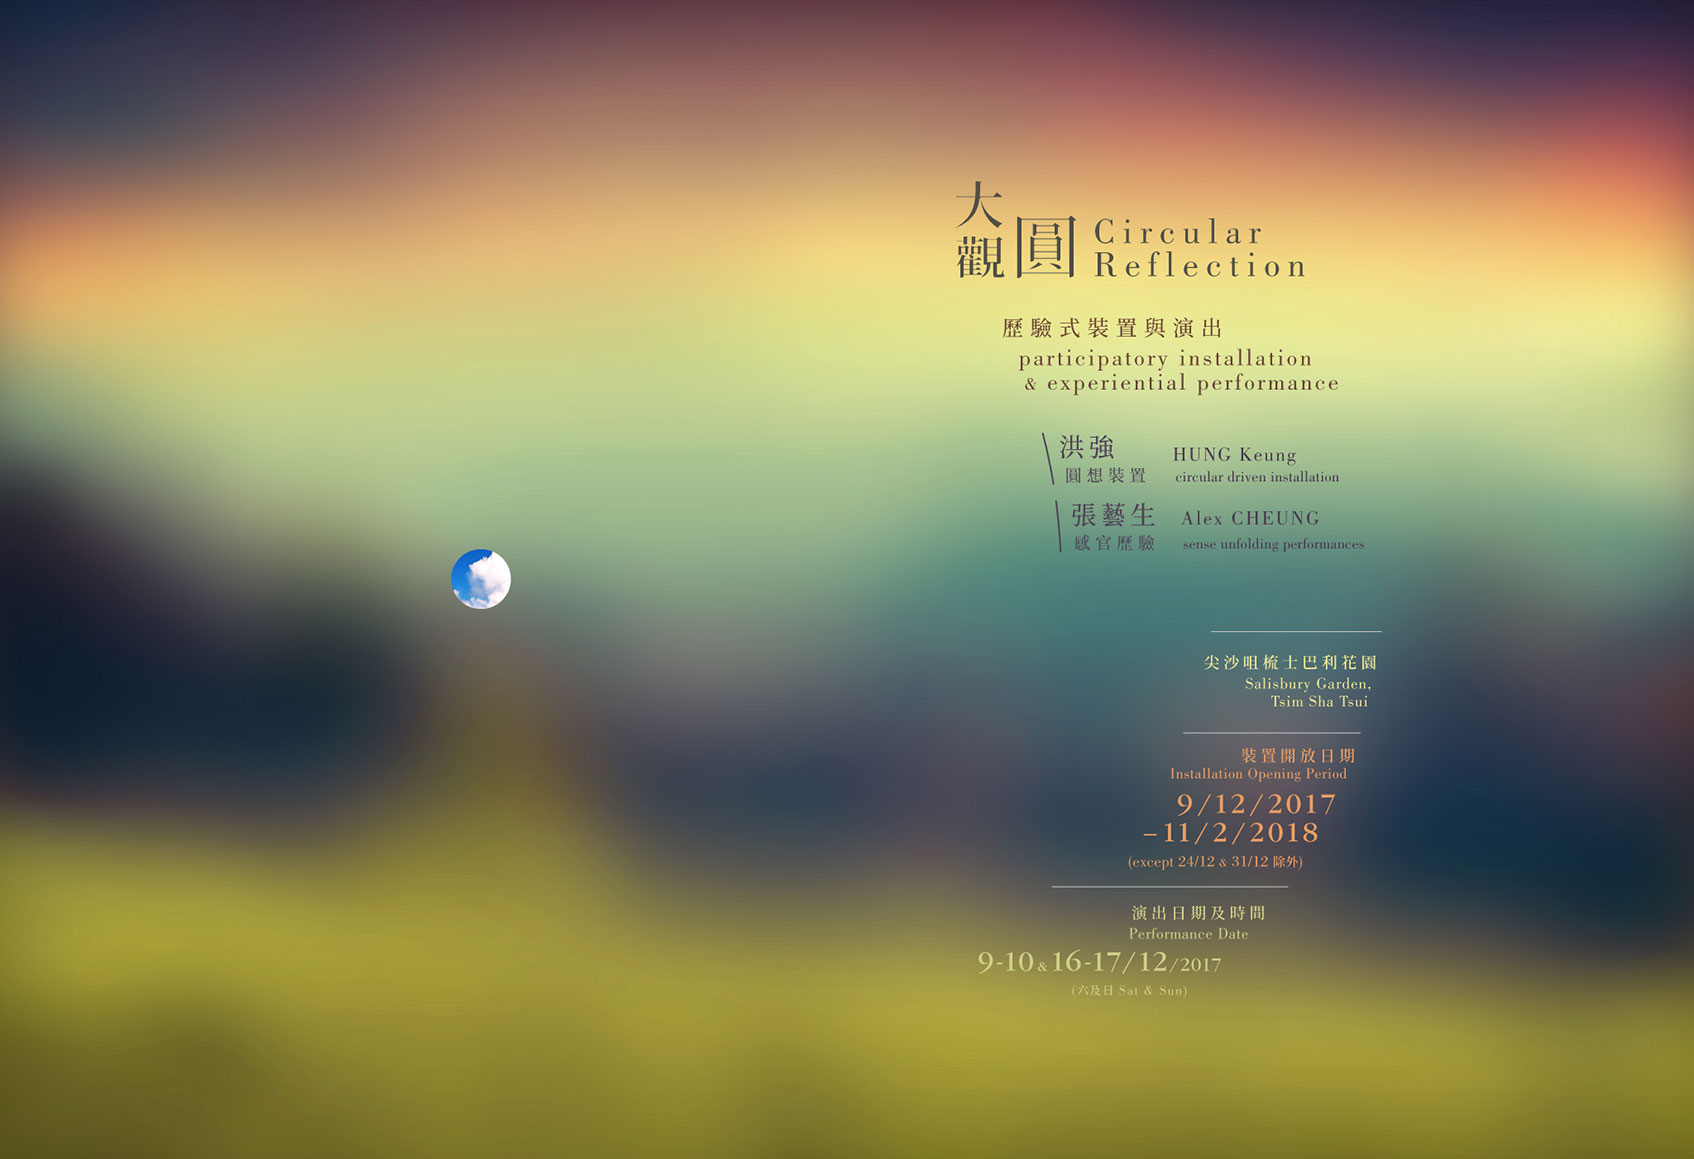 PUTYOURSELF.in ticketing 售票平台 - 大觀圓 Circular Reflection (06 Jan)